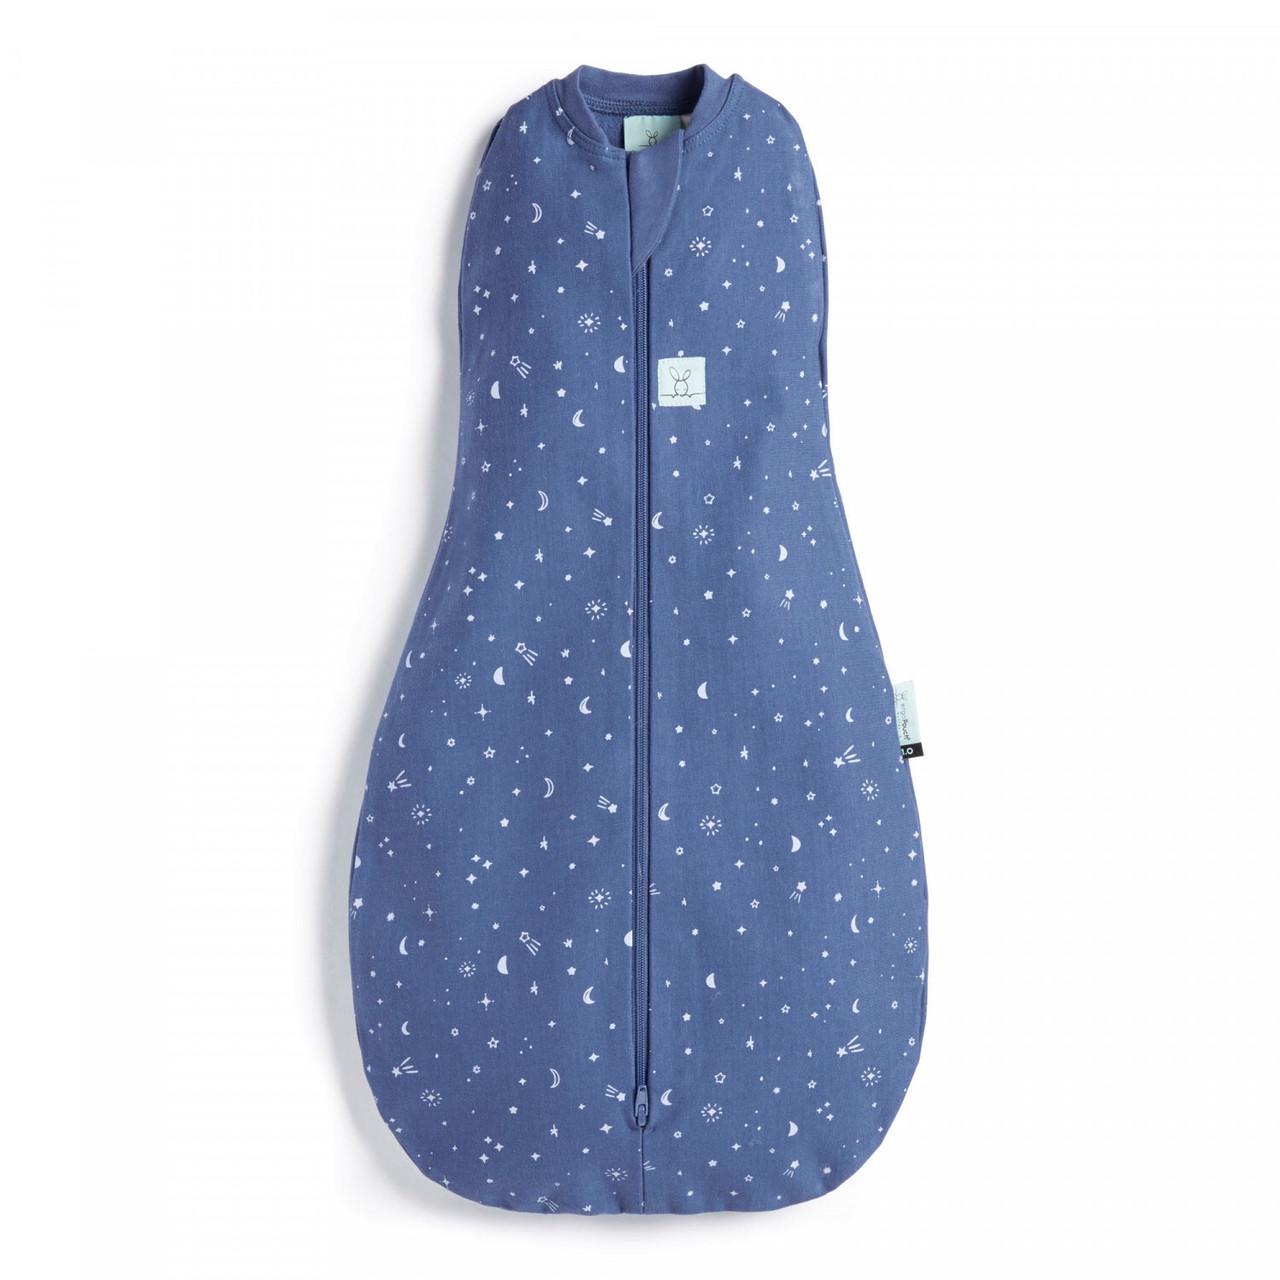 Ergopouch Cocoon Swaddle Bag 1.0 tog 0-3 Months NIGHT SKY at Baby Barn Discounts ergoPouch cocoon 1.0 tog is an escape-proof swaddle which converts to a sleeping bag.